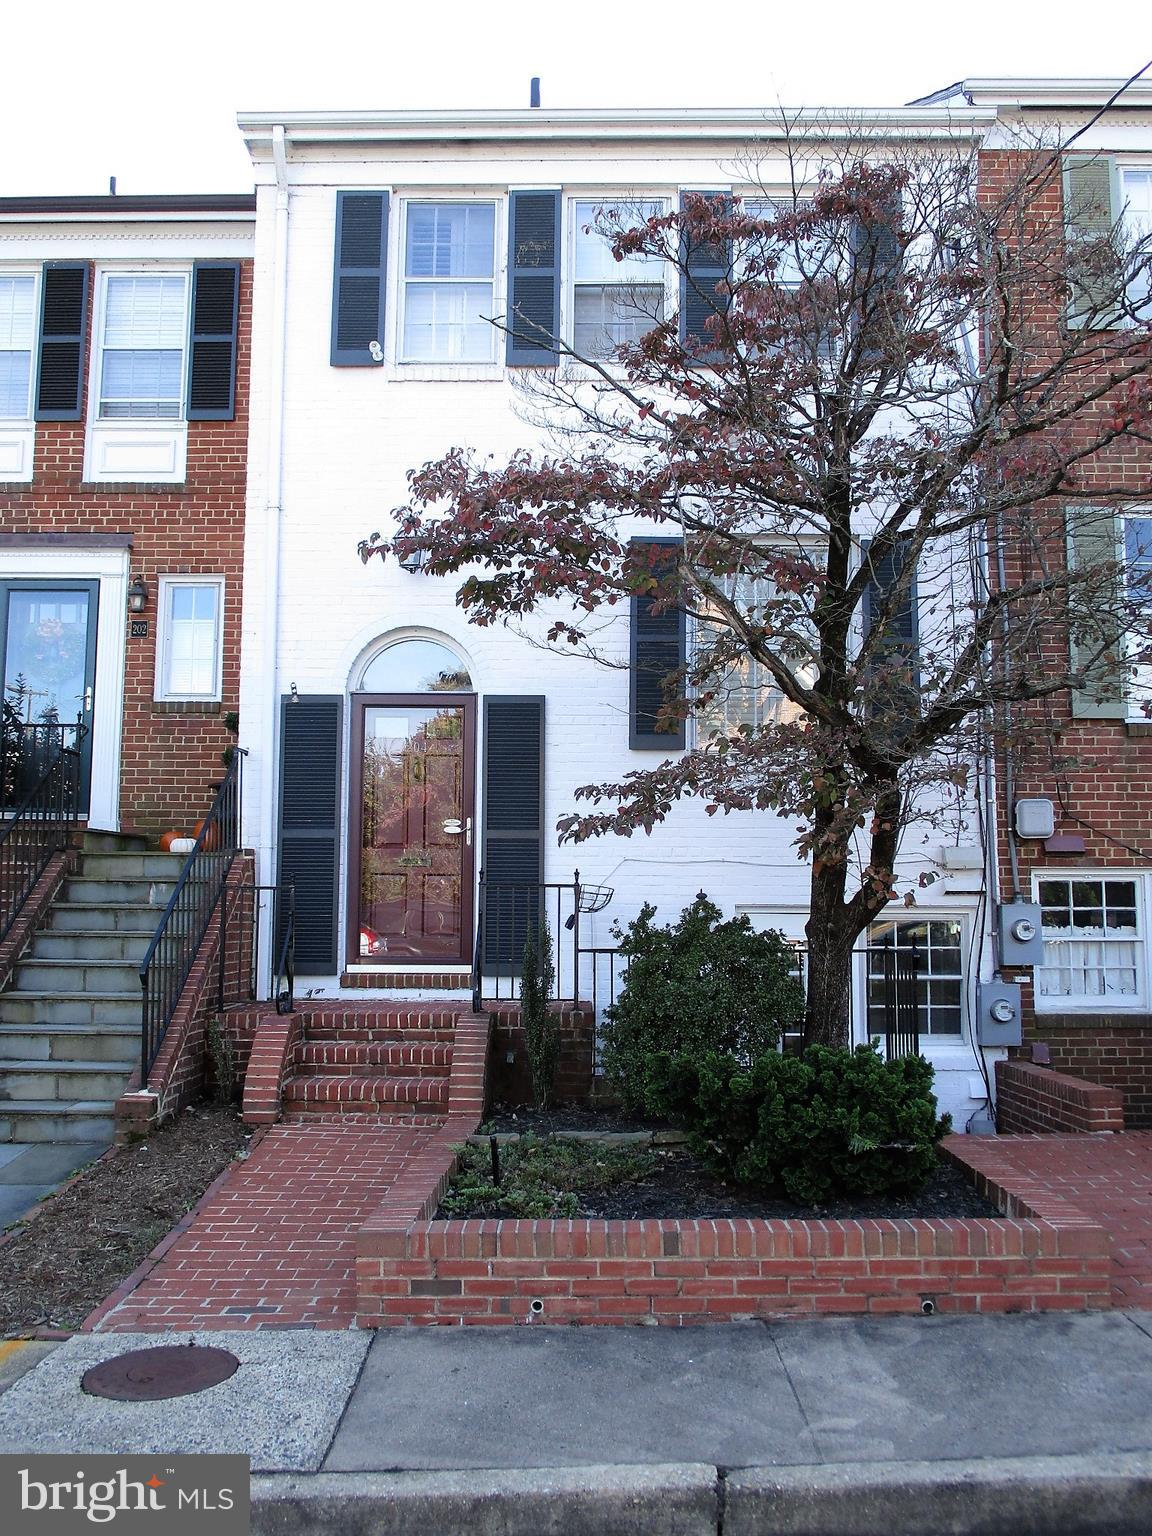 This lovely brick townhouse close to Jones Point Park, Mount Vernon Trail, Potomac Waterfront, King Street shops, and more is great for outdoor enthusiasts. Enjoy convenient parking, 2 spacious bedrooms, 2.5 bathrooms, hardwood floors, updated kitchen w/SS appliances and Quartz counter tops, 2 fireplaces, floored attic, backyard retreat, low maintenance yard, and no HOA. Don't miss this gem!